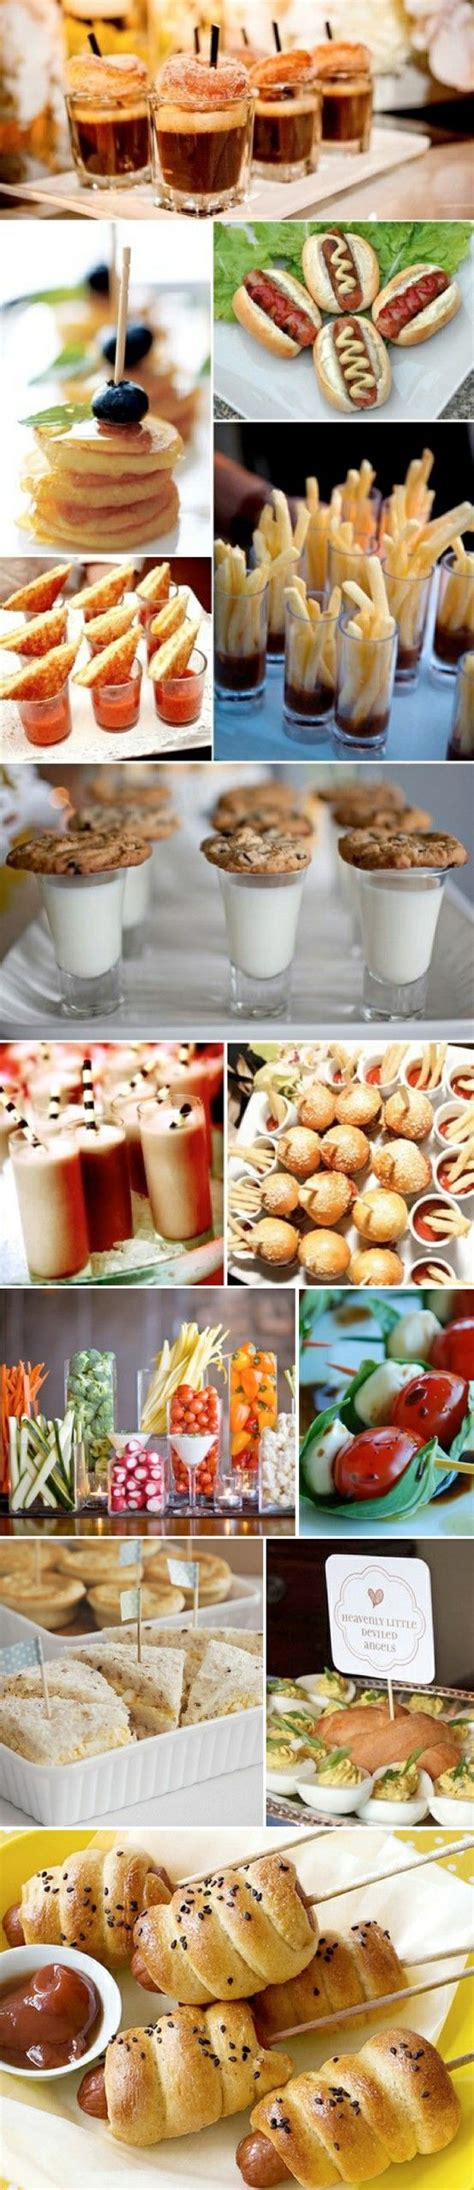 Finger food ideas party food tips reciped pinterest